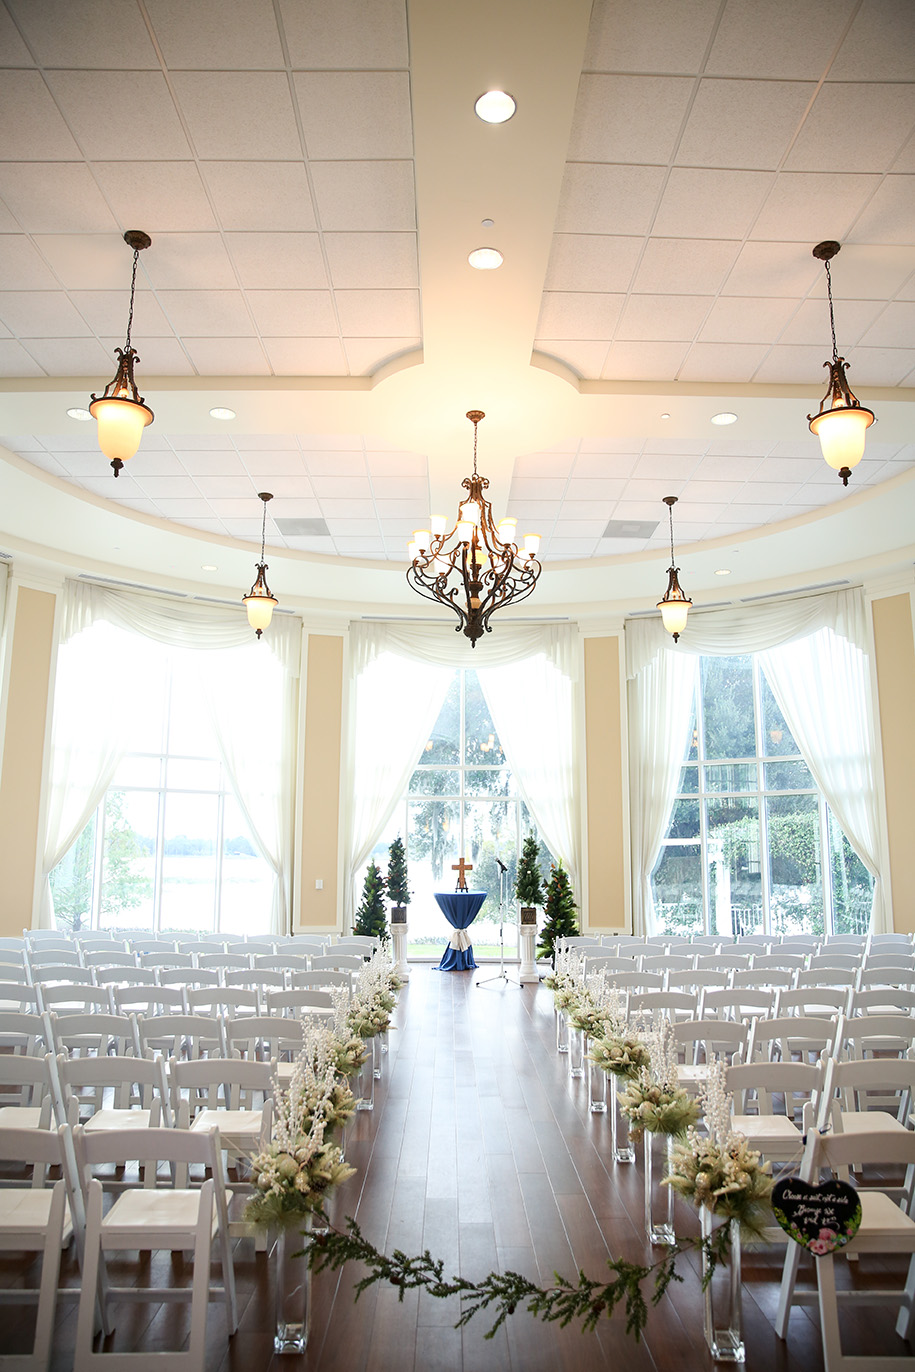 Lake_Mary_Event_Center_orlando_wedding_photographer_www.livehappystudio.com_05004-27.jpg